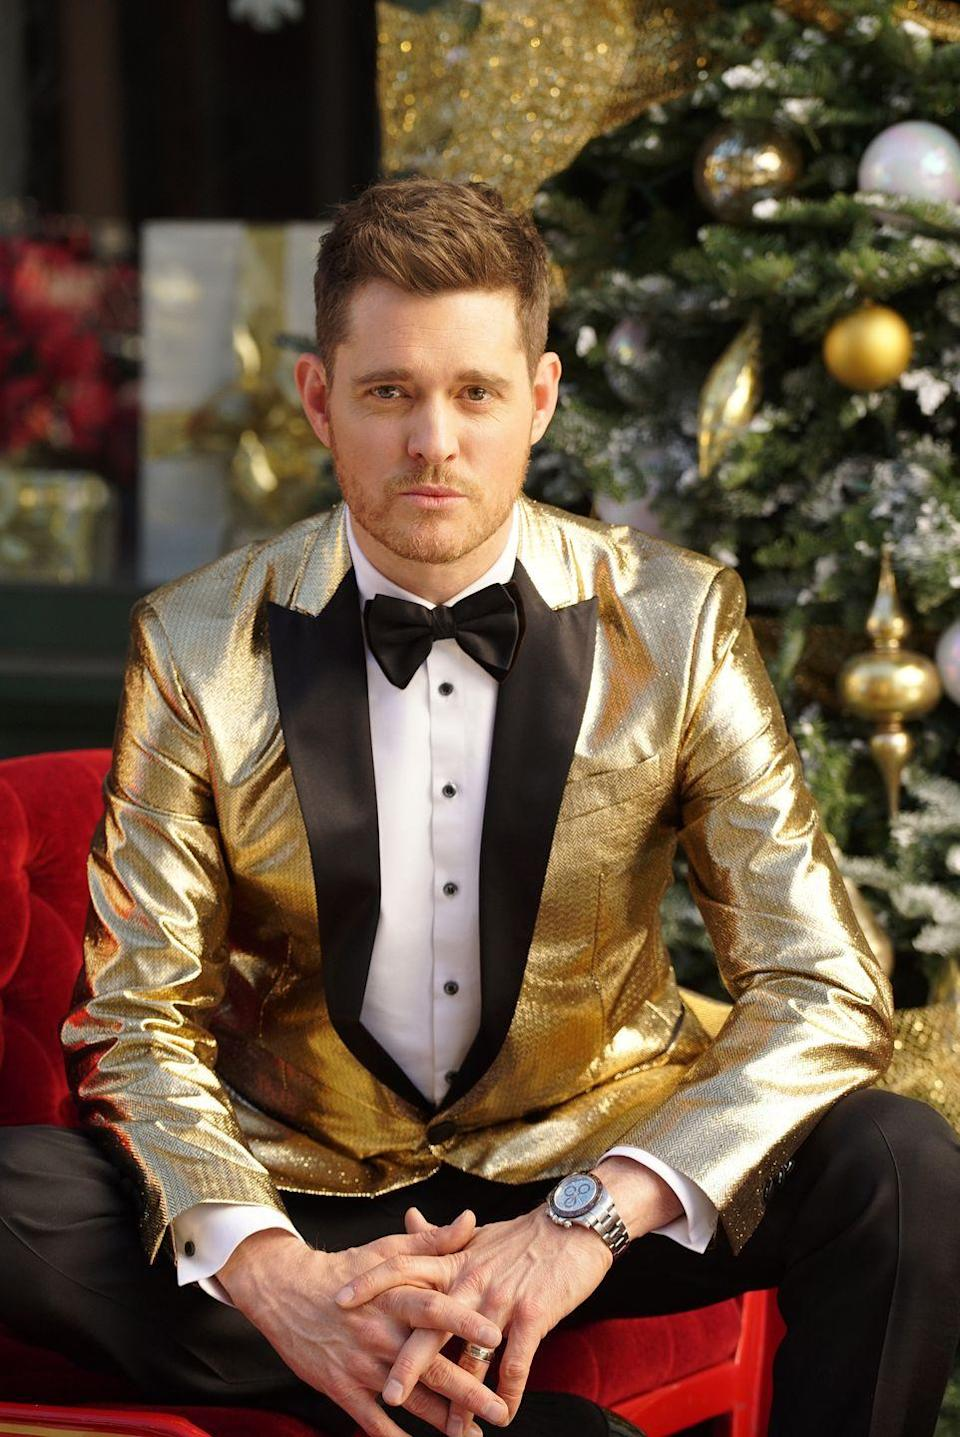 """<p>Full disclosure, just about any Christmas song by Michael Bublé could make this list because of his soothing voice. </p><p><a class=""""link rapid-noclick-resp"""" href=""""https://www.amazon.com/Its-Beginning-Look-Like-Christmas/dp/B005UA0FTQ/?tag=syn-yahoo-20&ascsubtag=%5Bartid%7C10055.g.2680%5Bsrc%7Cyahoo-us"""" rel=""""nofollow noopener"""" target=""""_blank"""" data-ylk=""""slk:AMAZON"""">AMAZON</a> <a class=""""link rapid-noclick-resp"""" href=""""https://go.redirectingat.com?id=74968X1596630&url=https%3A%2F%2Fitunes.apple.com%2Fus%2Falbum%2Fits-beginning-to-look-a-lot-like-christmas%2F669854820&sref=https%3A%2F%2Fwww.goodhousekeeping.com%2Fholidays%2Fchristmas-ideas%2Fg2680%2Fchristmas-songs%2F"""" rel=""""nofollow noopener"""" target=""""_blank"""" data-ylk=""""slk:ITUNES"""">ITUNES</a></p>"""